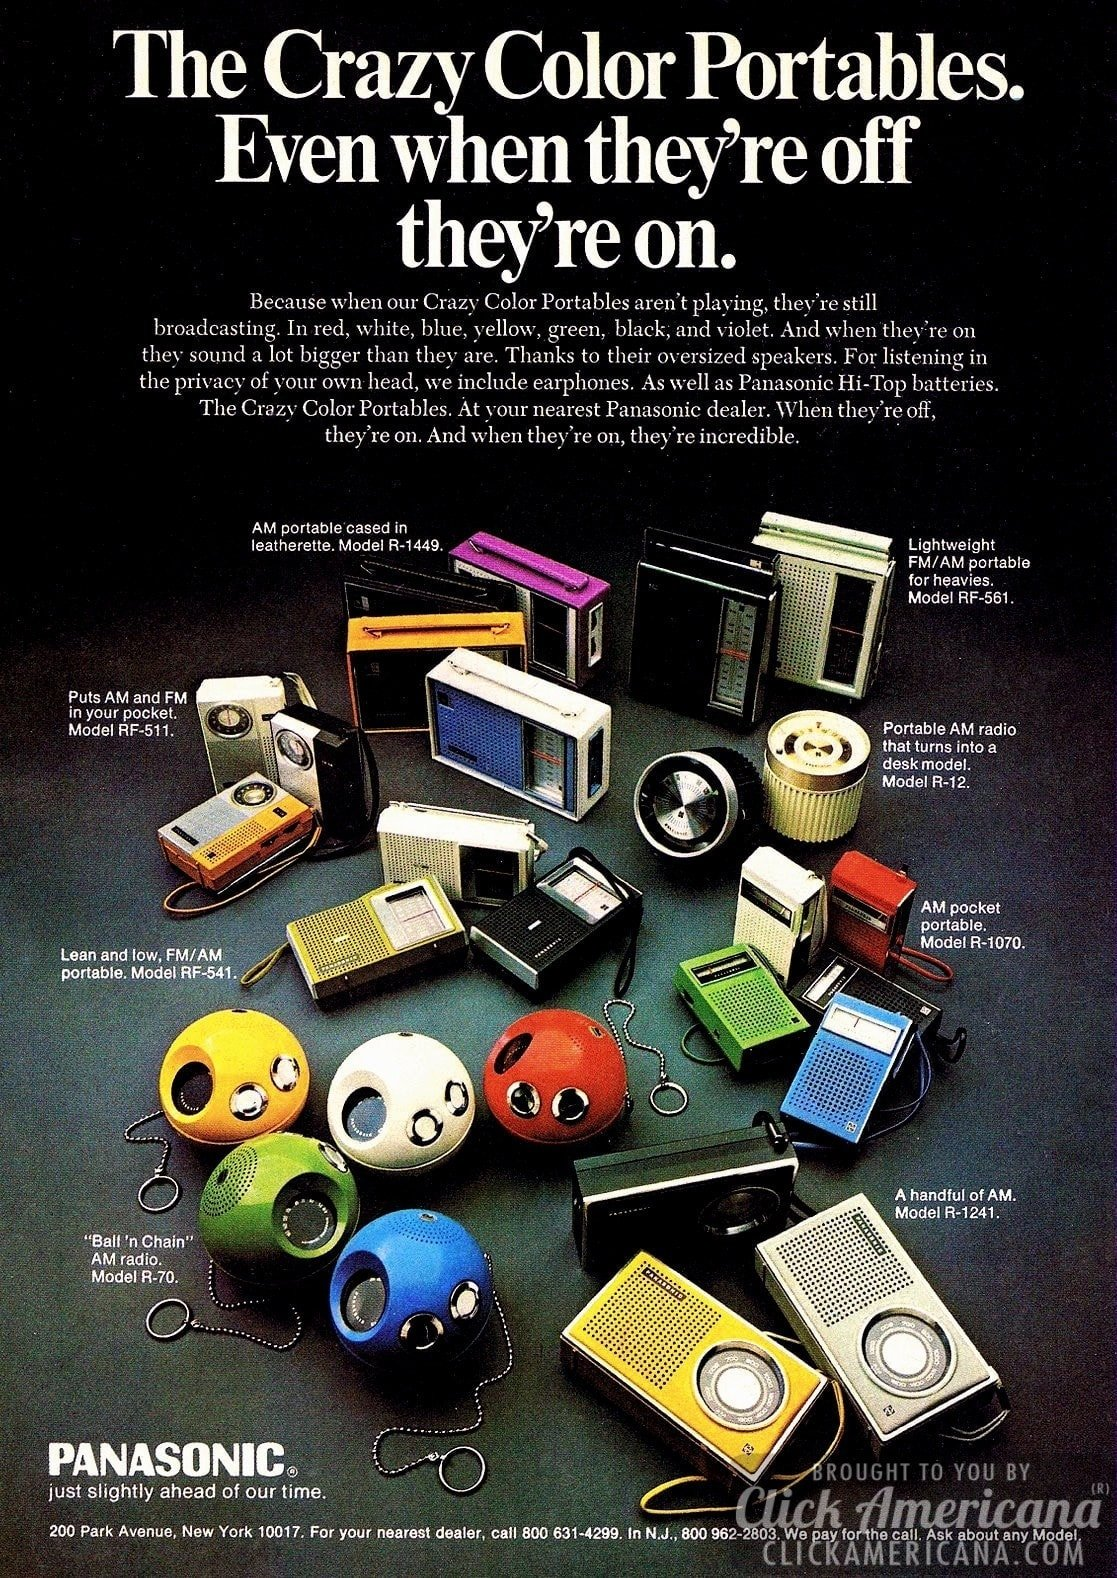 The crazy color portables.